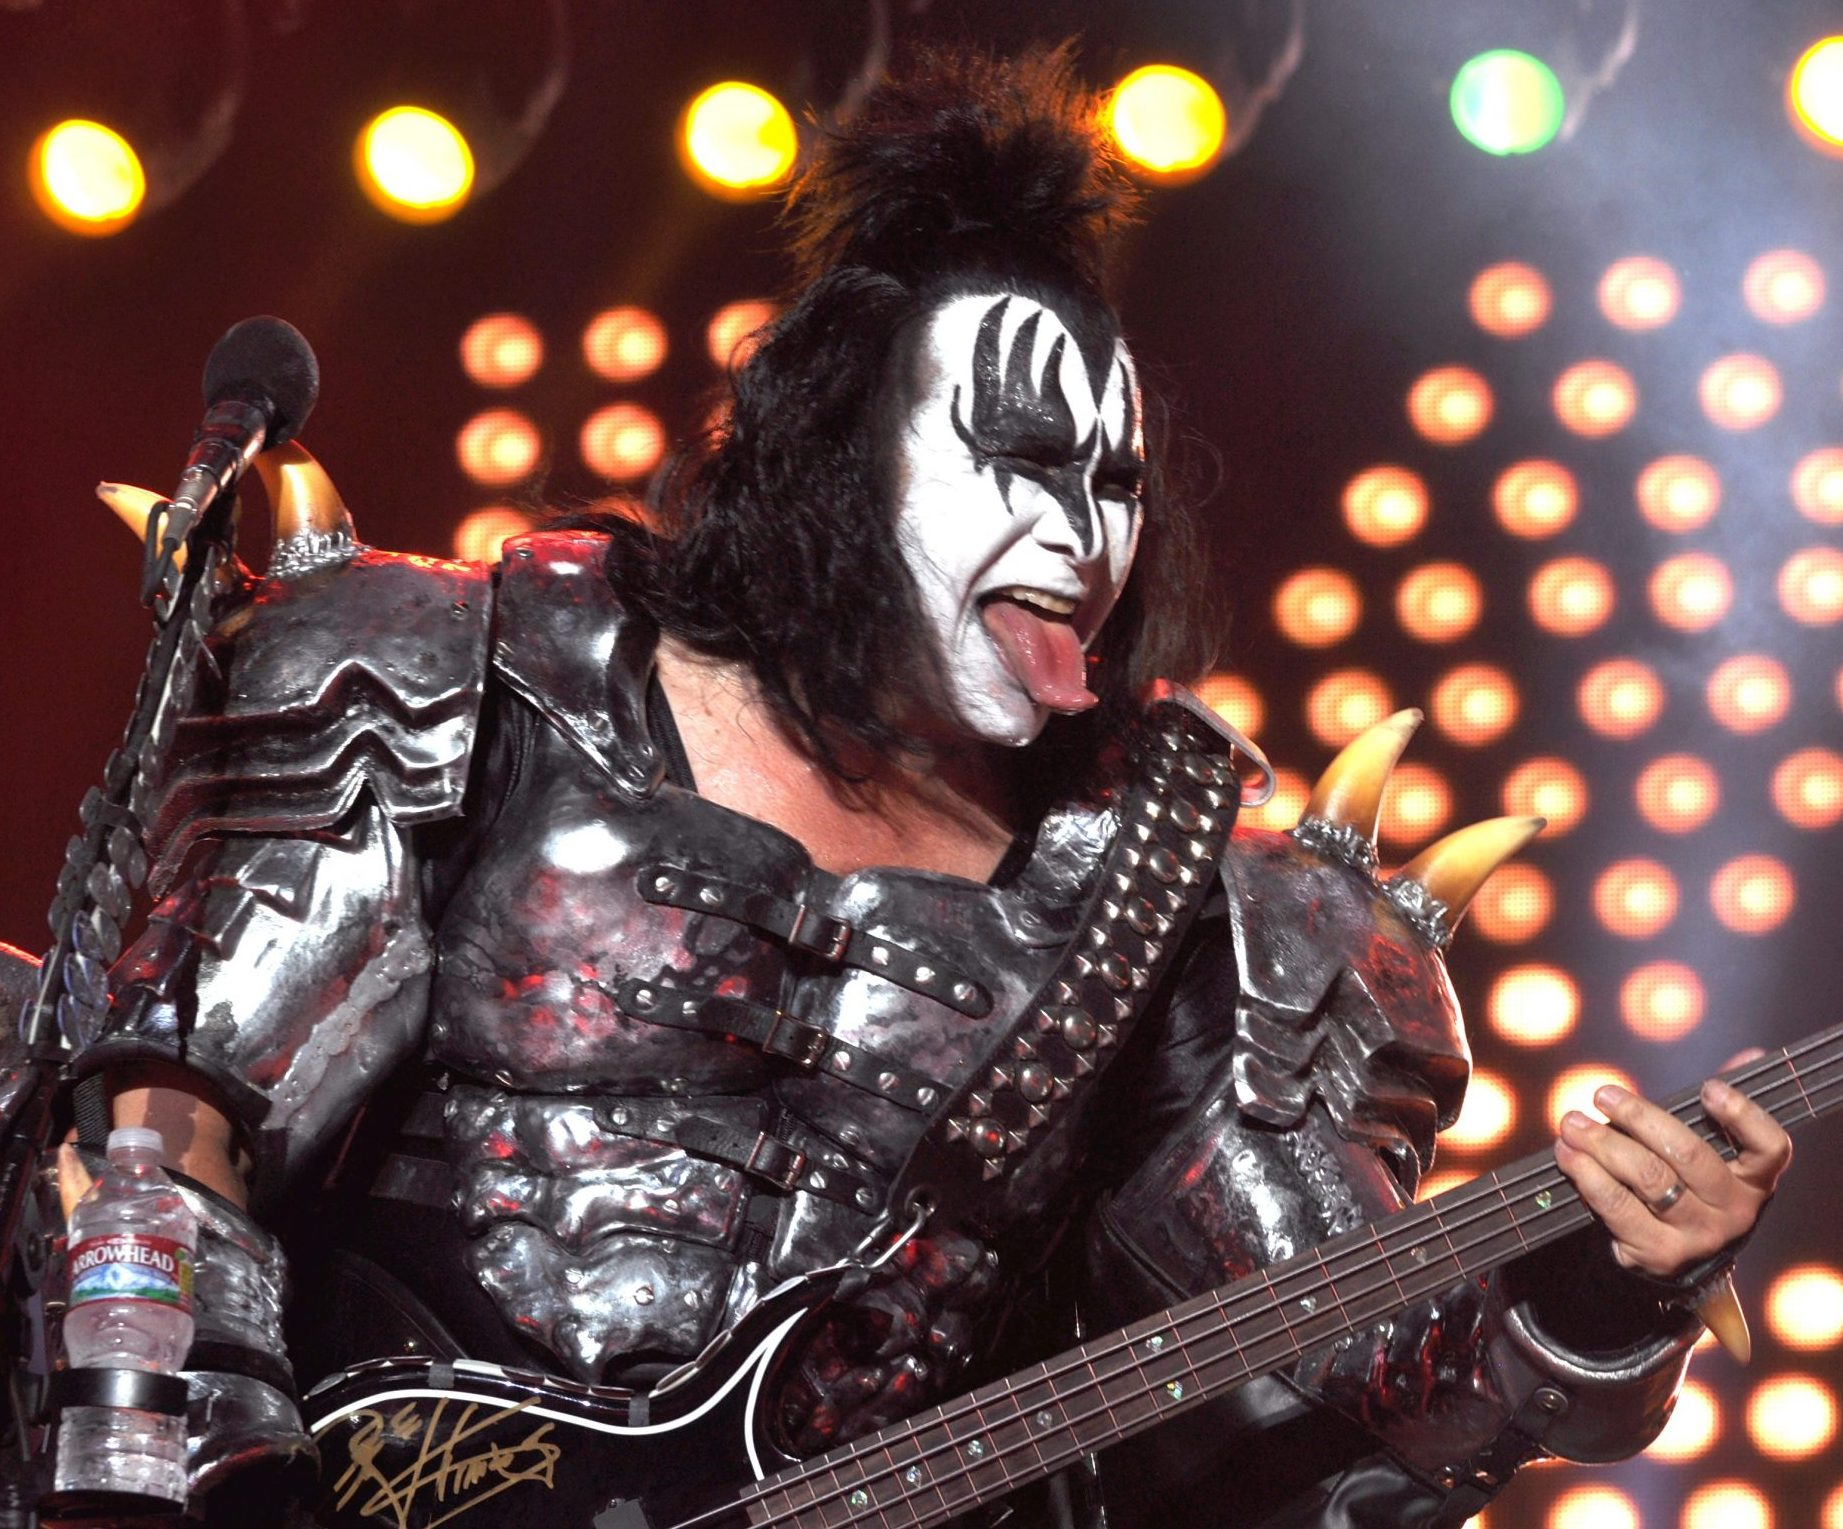 KISS DSC 1474 8.29.12 7894060614 scaled e1619450160725 Rock'n'Roll All Night With These 10 Facts About Kiss